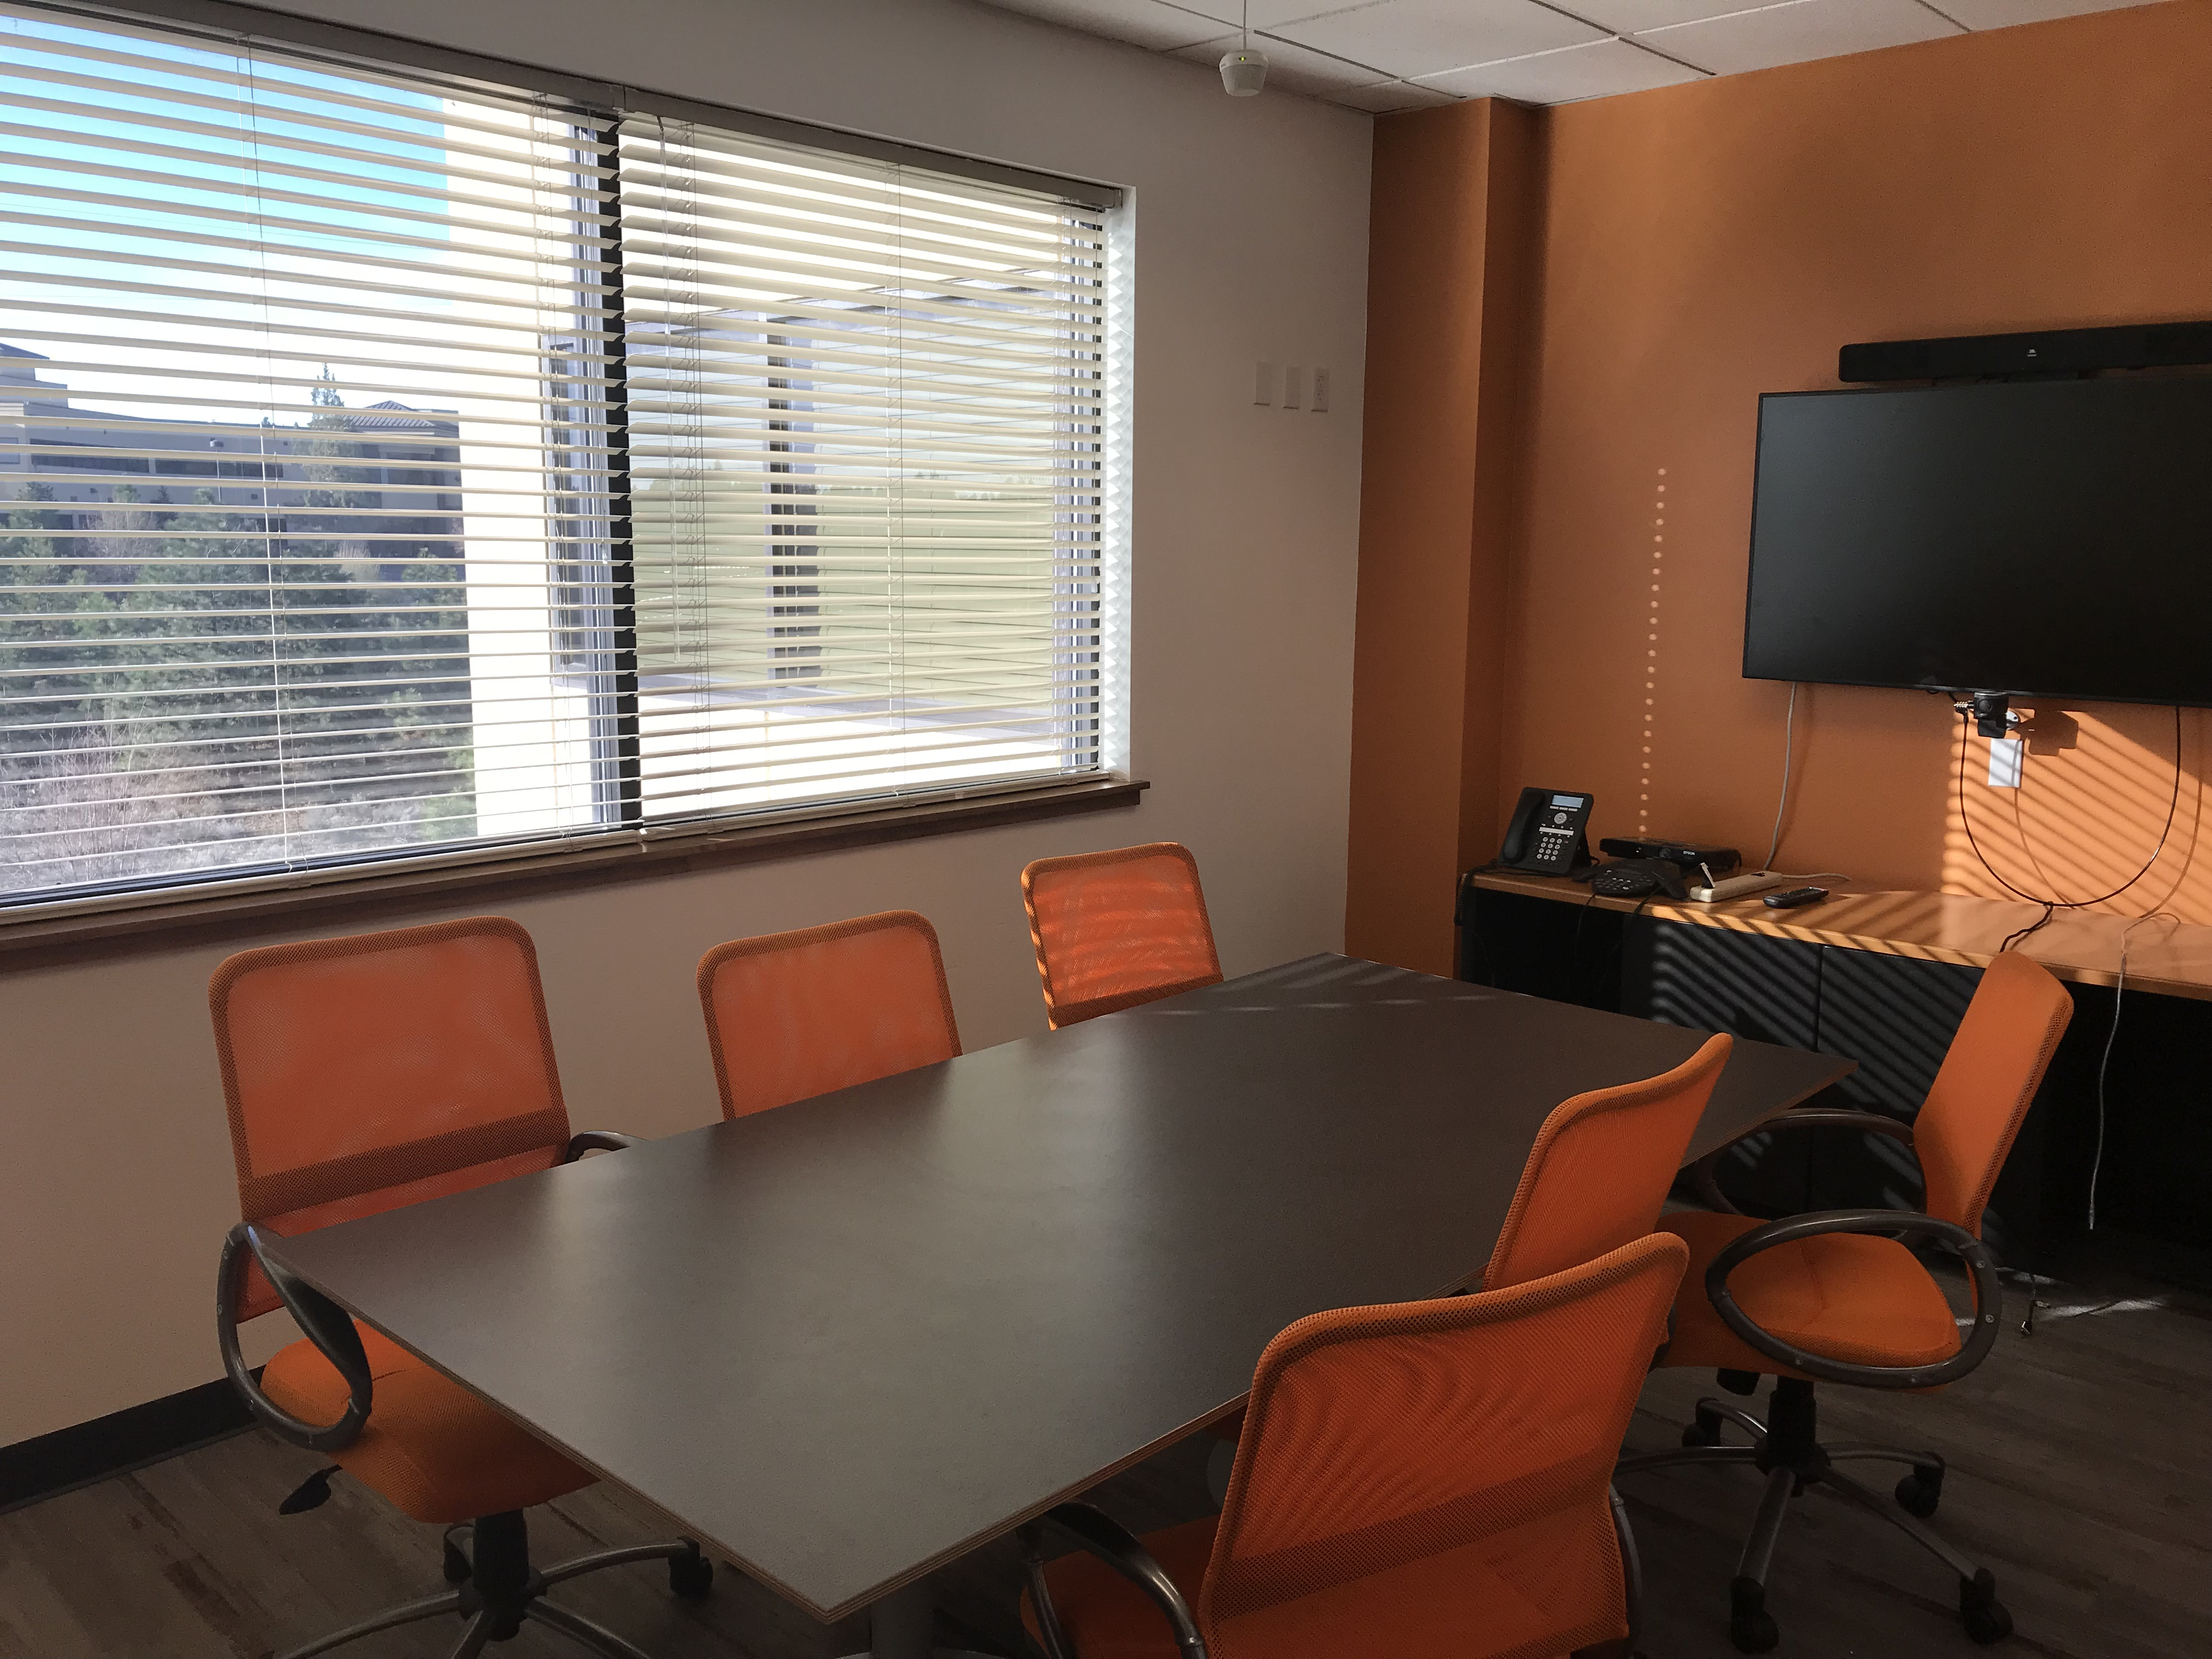 Co-Lab Conference Room 1